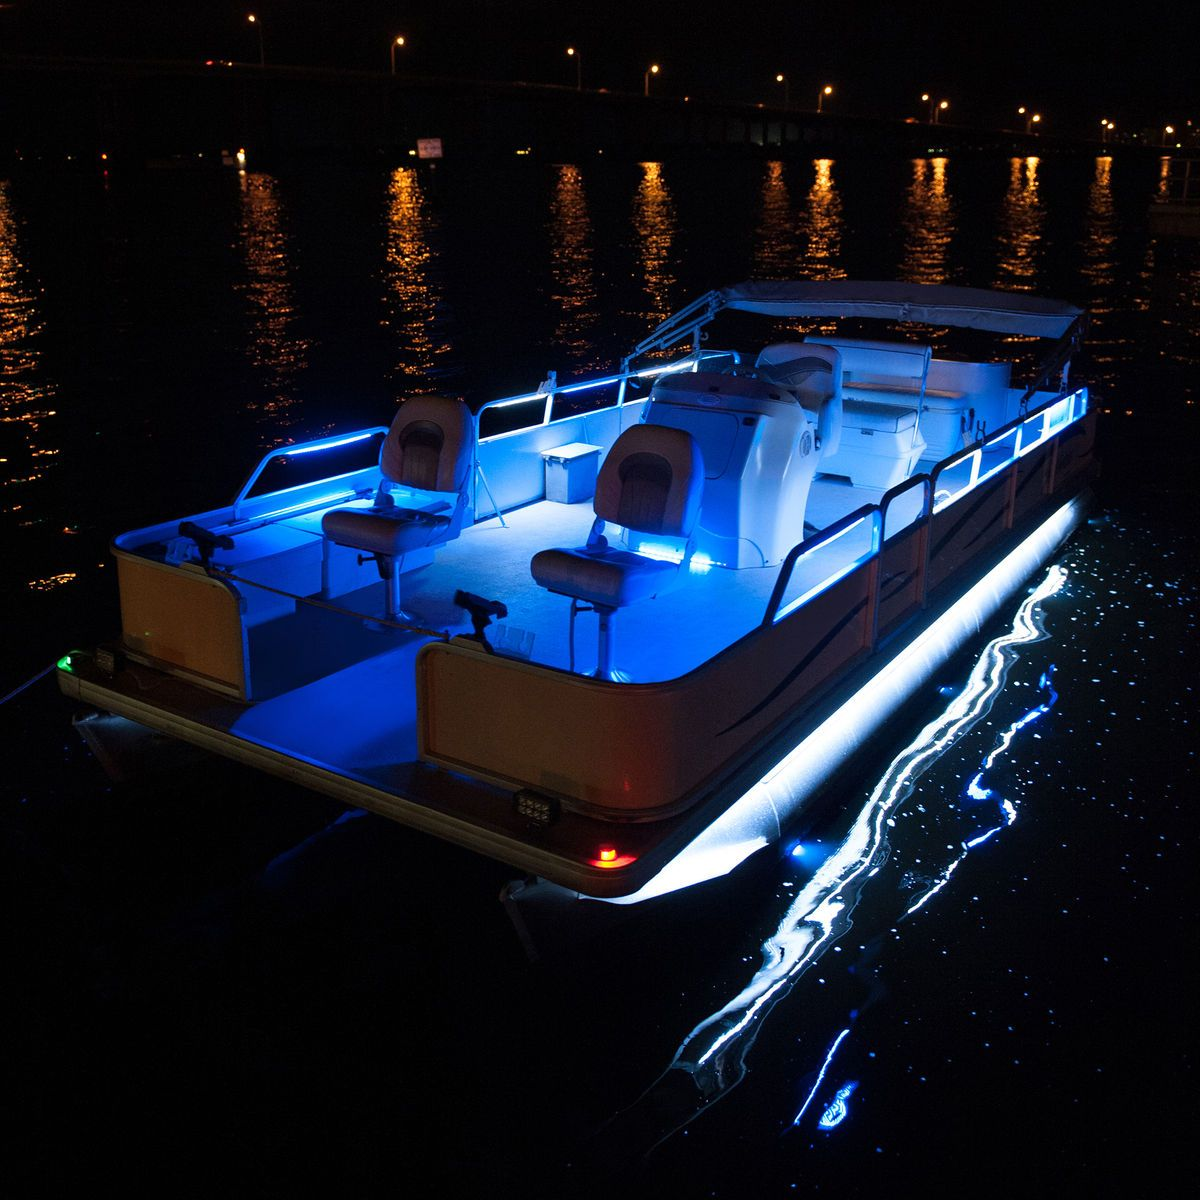 Overtons 24 Flex Track LED Light Kit For Pontoon Boats - Overton's on deck lighting ideas, pontoon furniture, houseboat lighting ideas, custom lighting ideas, pontoon fishing lights, trailer lighting ideas, dock lighting ideas, kayak lighting ideas, pier lighting ideas, light parade ideas, pontoon an inboard to outboard conversion, lighted christmas parade float ideas, malibu lighting ideas, boat lighting ideas,